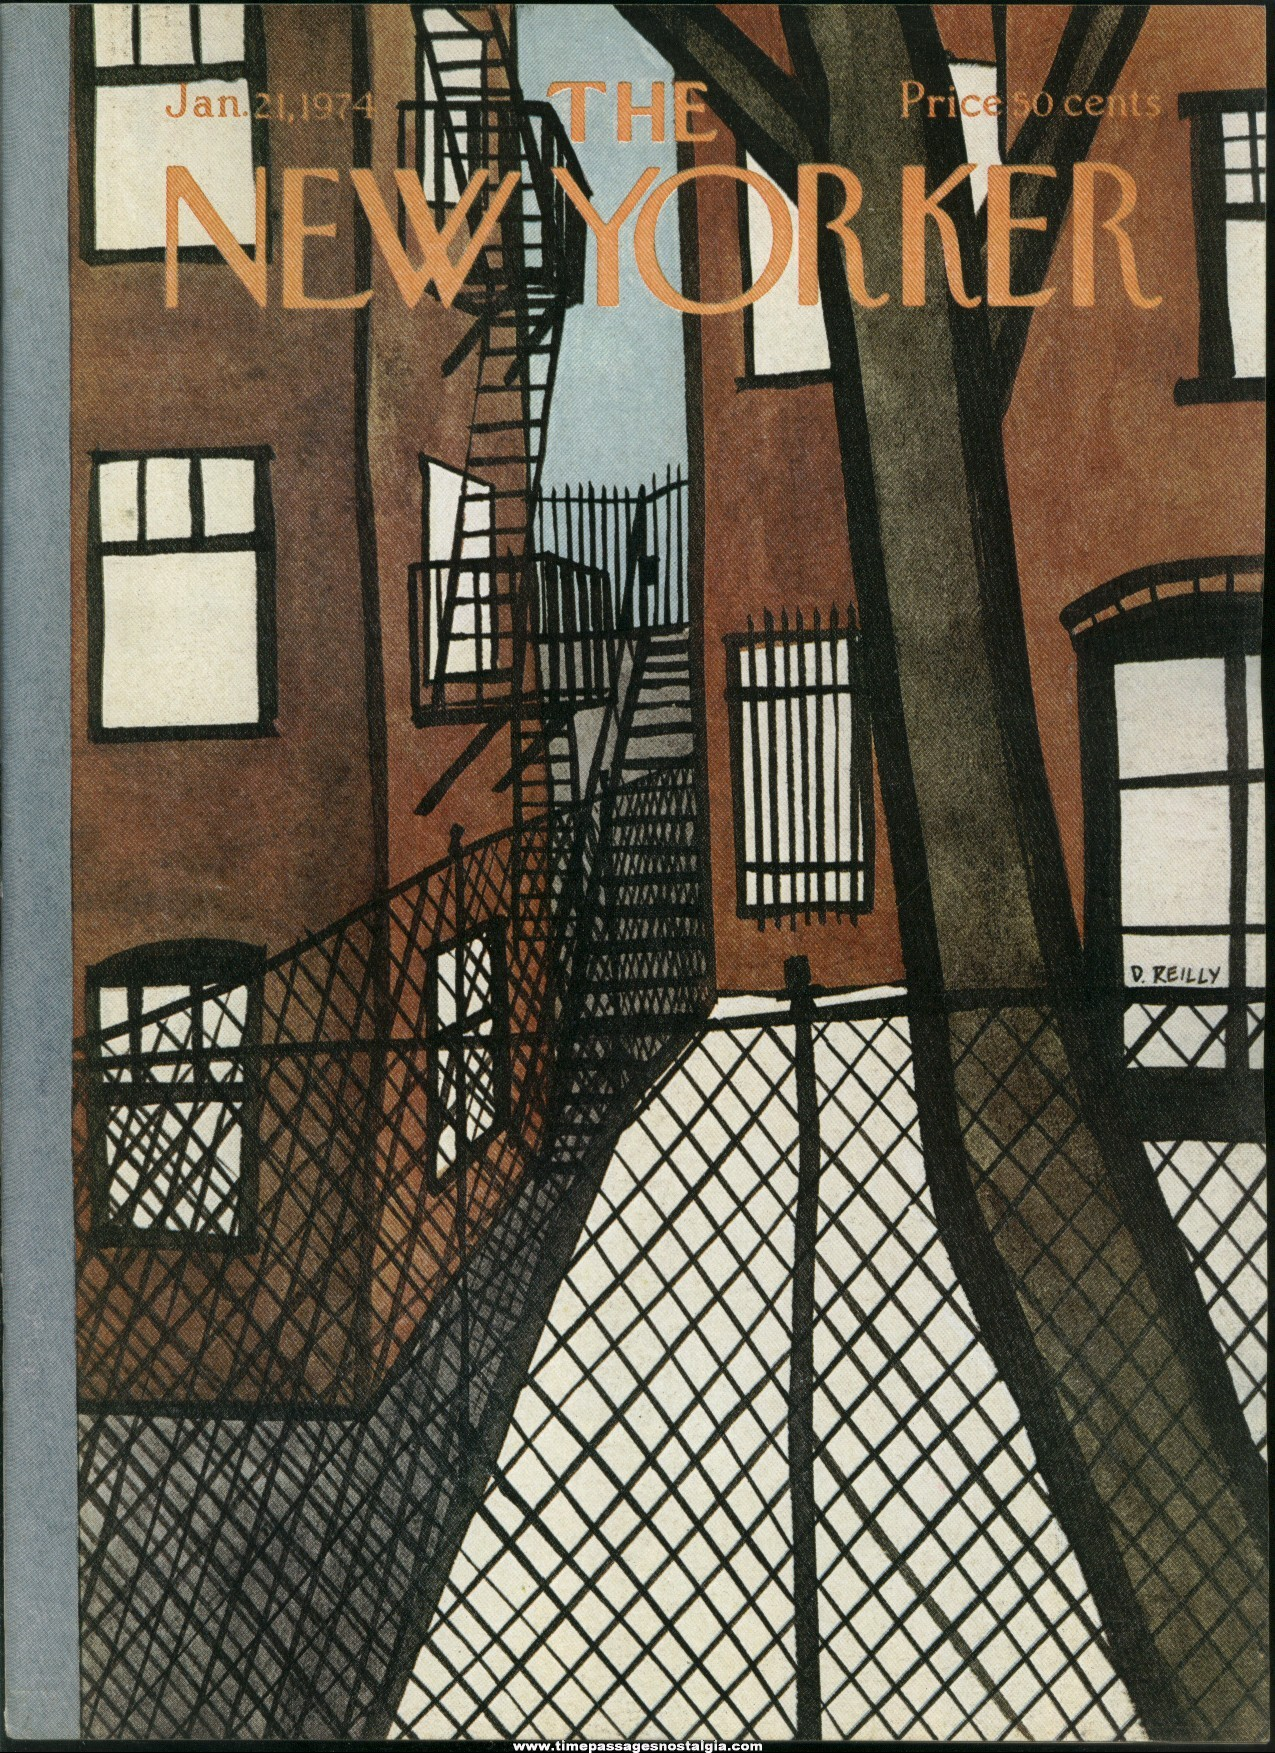 New Yorker Magazine - January 21, 1974 - Cover by Donald Reilly